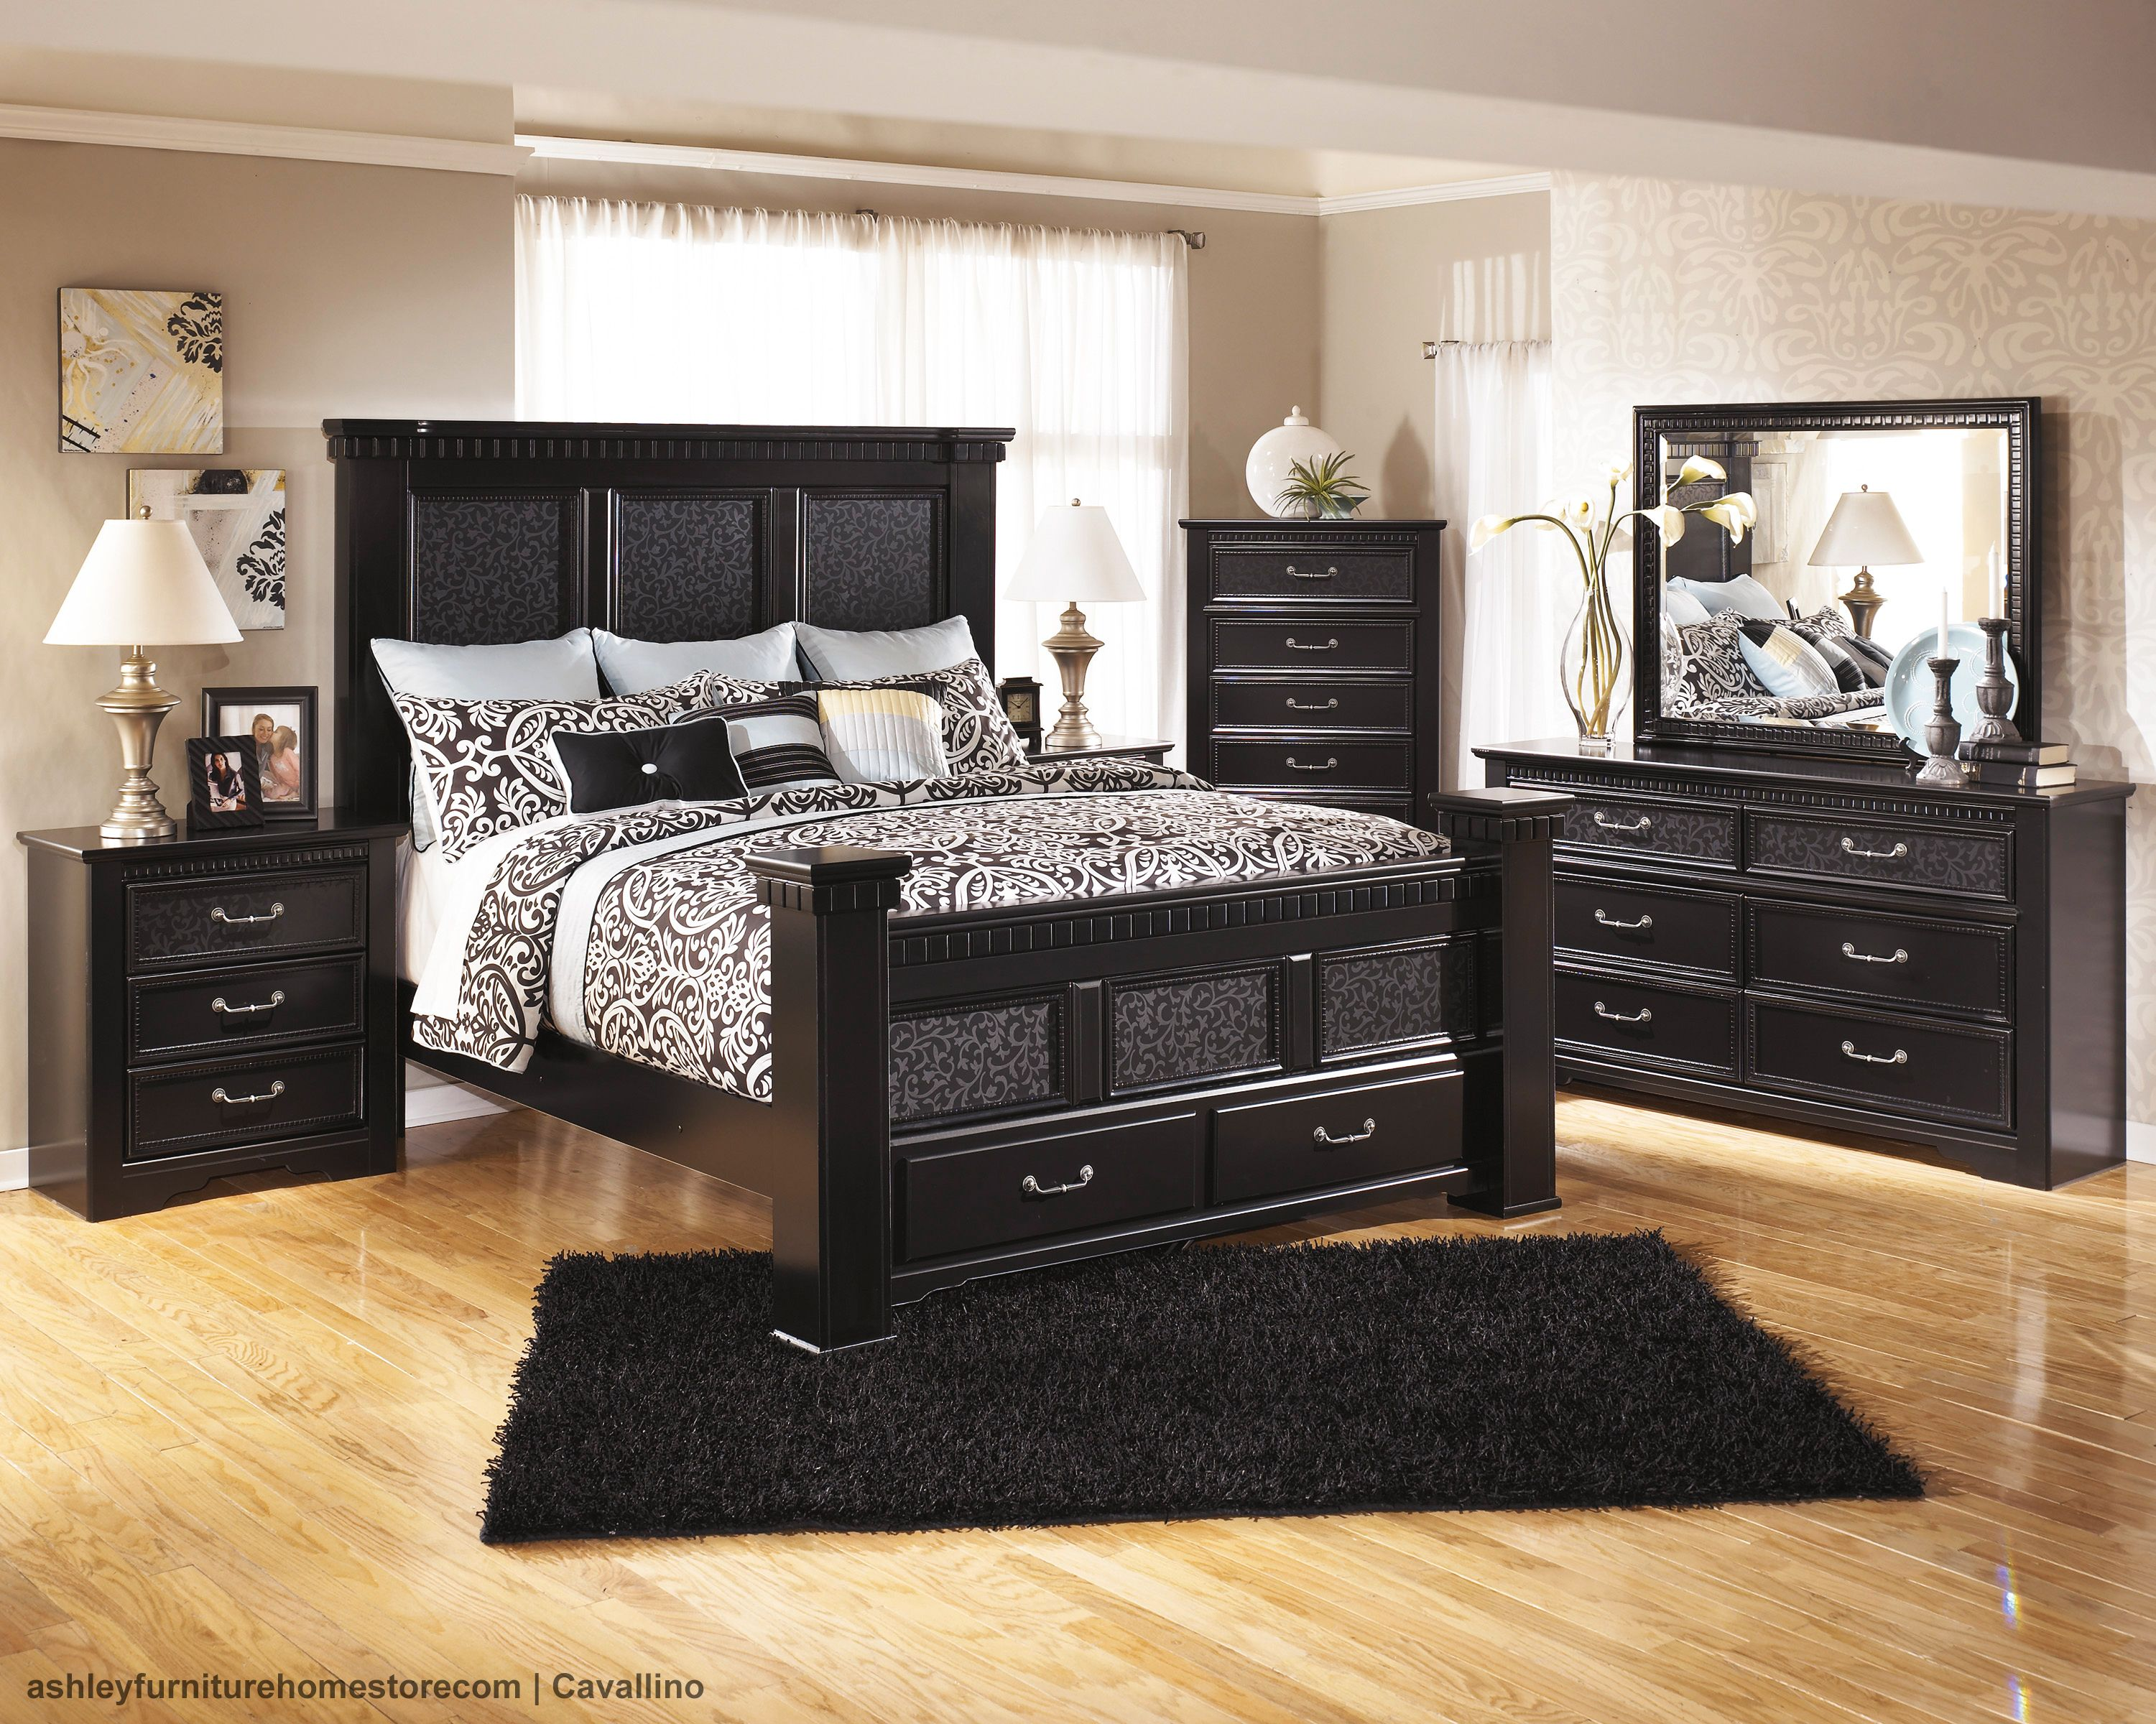 Pair Dark Furniture With Light Accents So Your Room Never Feels